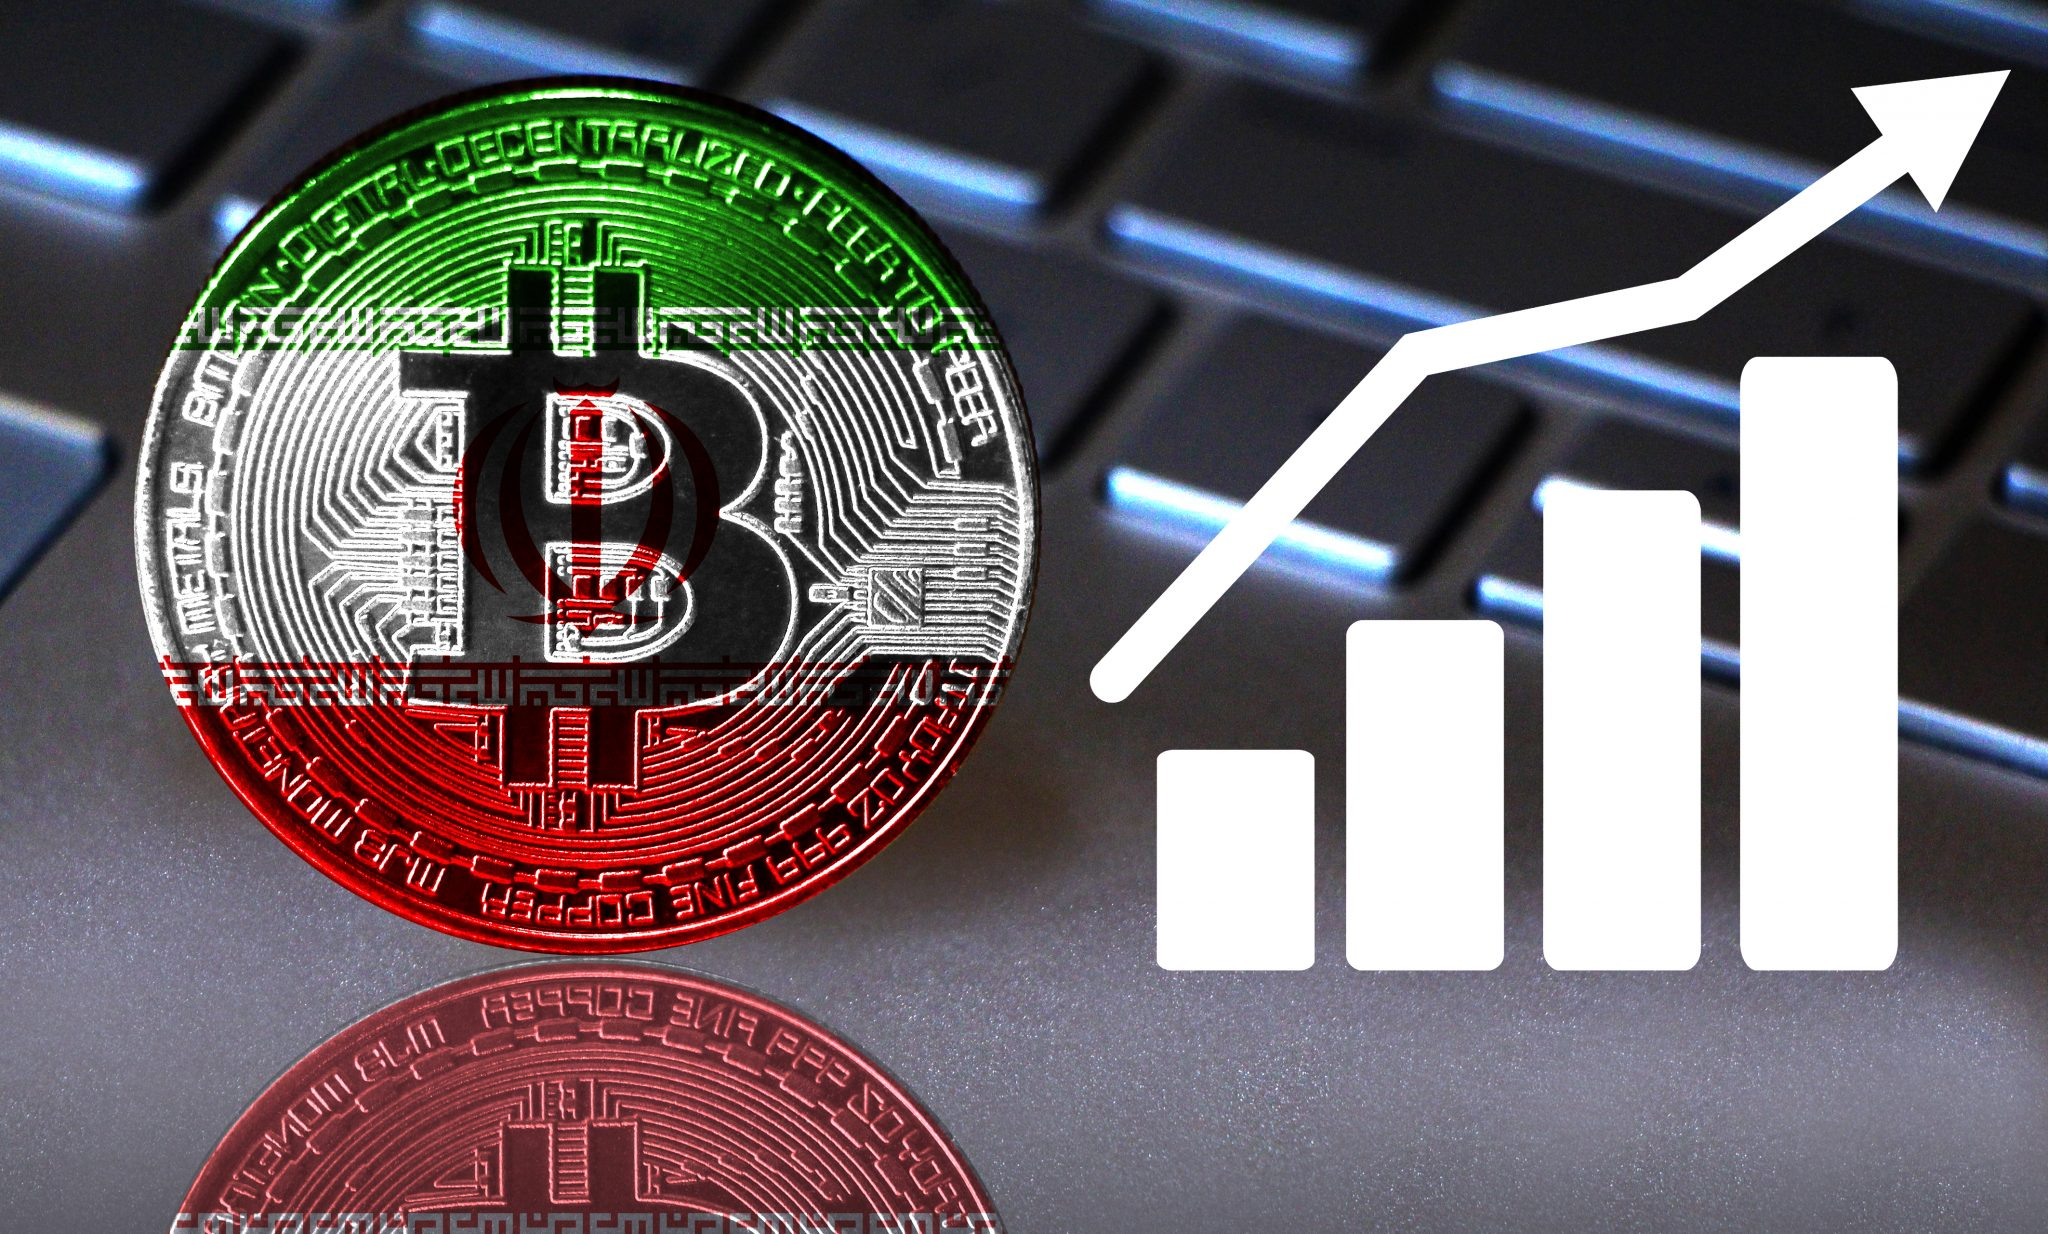 Bitcoin close-up on the keyboard background, the Iran flag is shown on the bitcoin. Also the growth chart is shown.